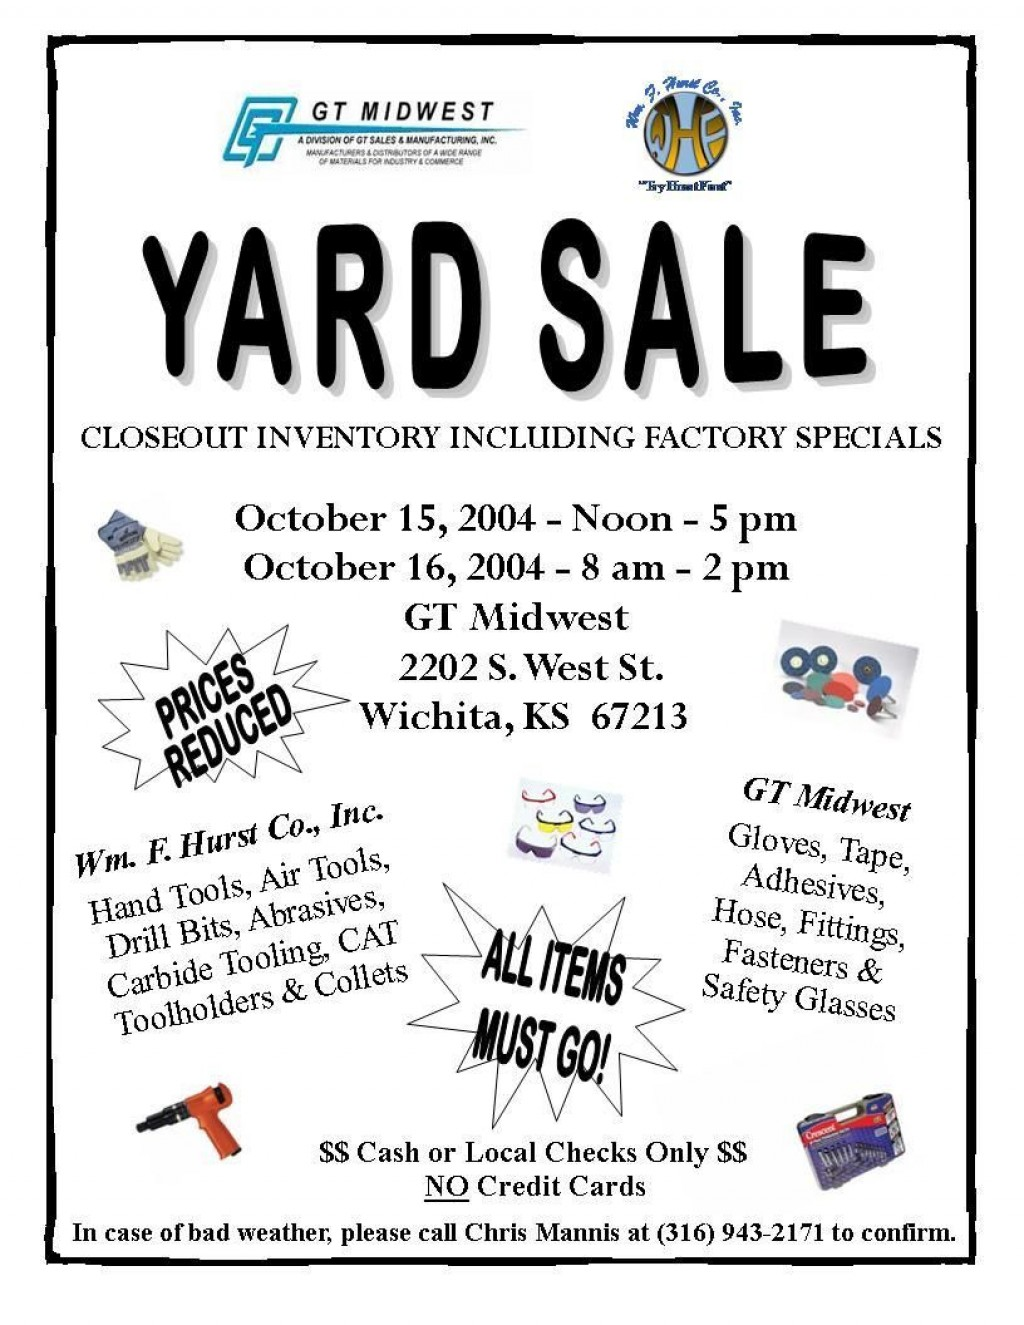 005 Formidable Yard Sale Flyer Template Free Concept  Community GarageLarge